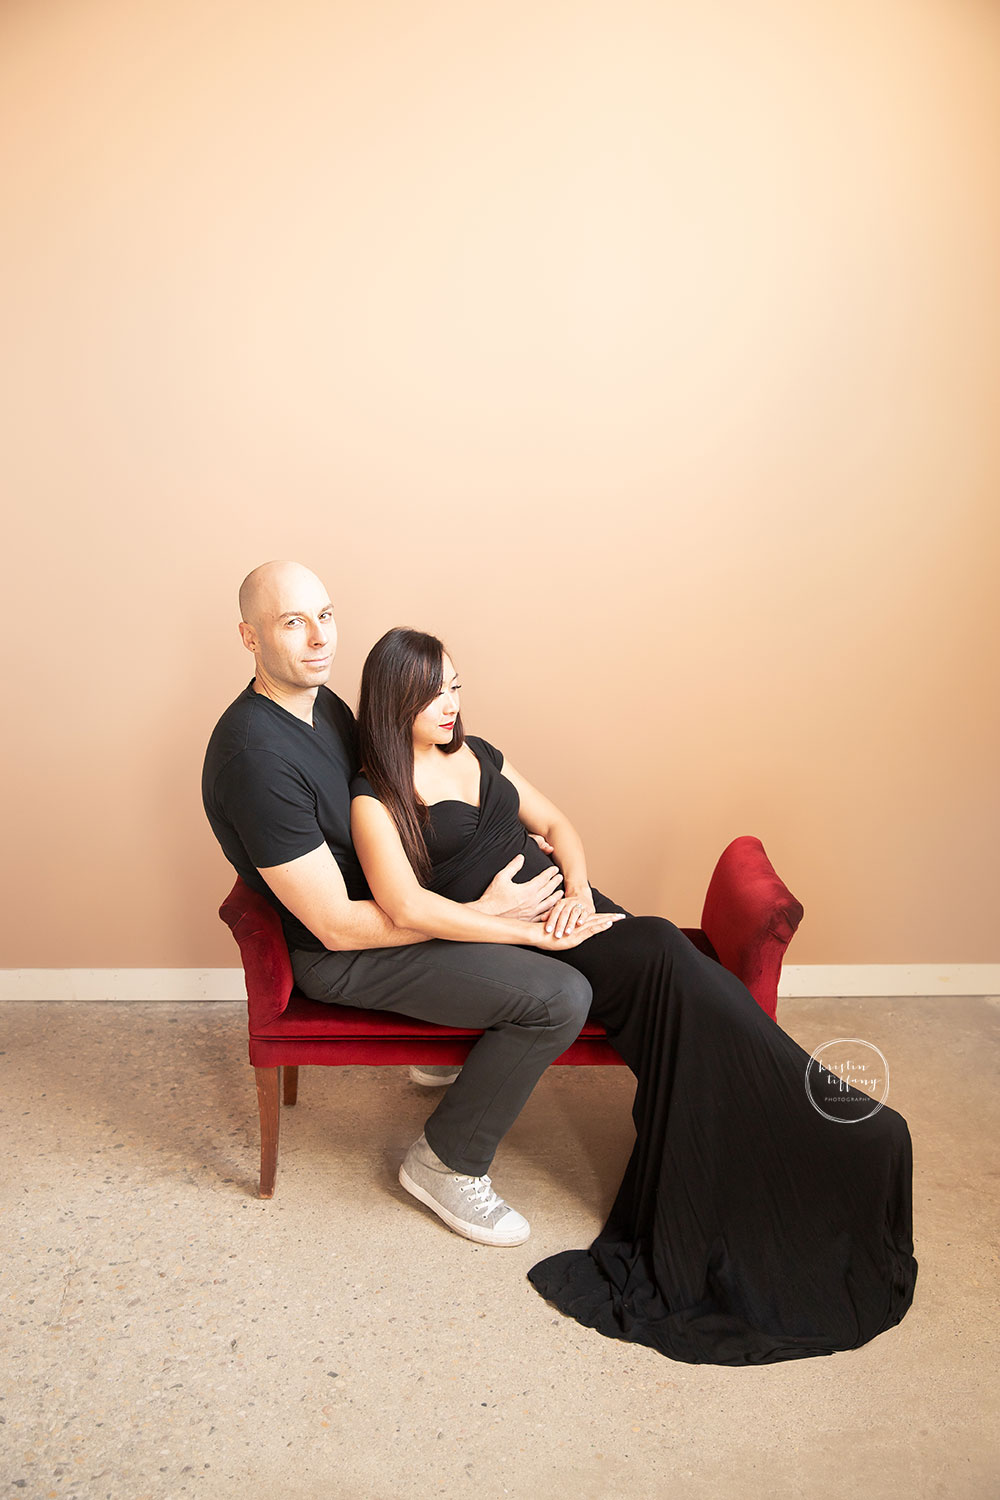 a maternity photo of an expecting mom at her maternity photoshoot